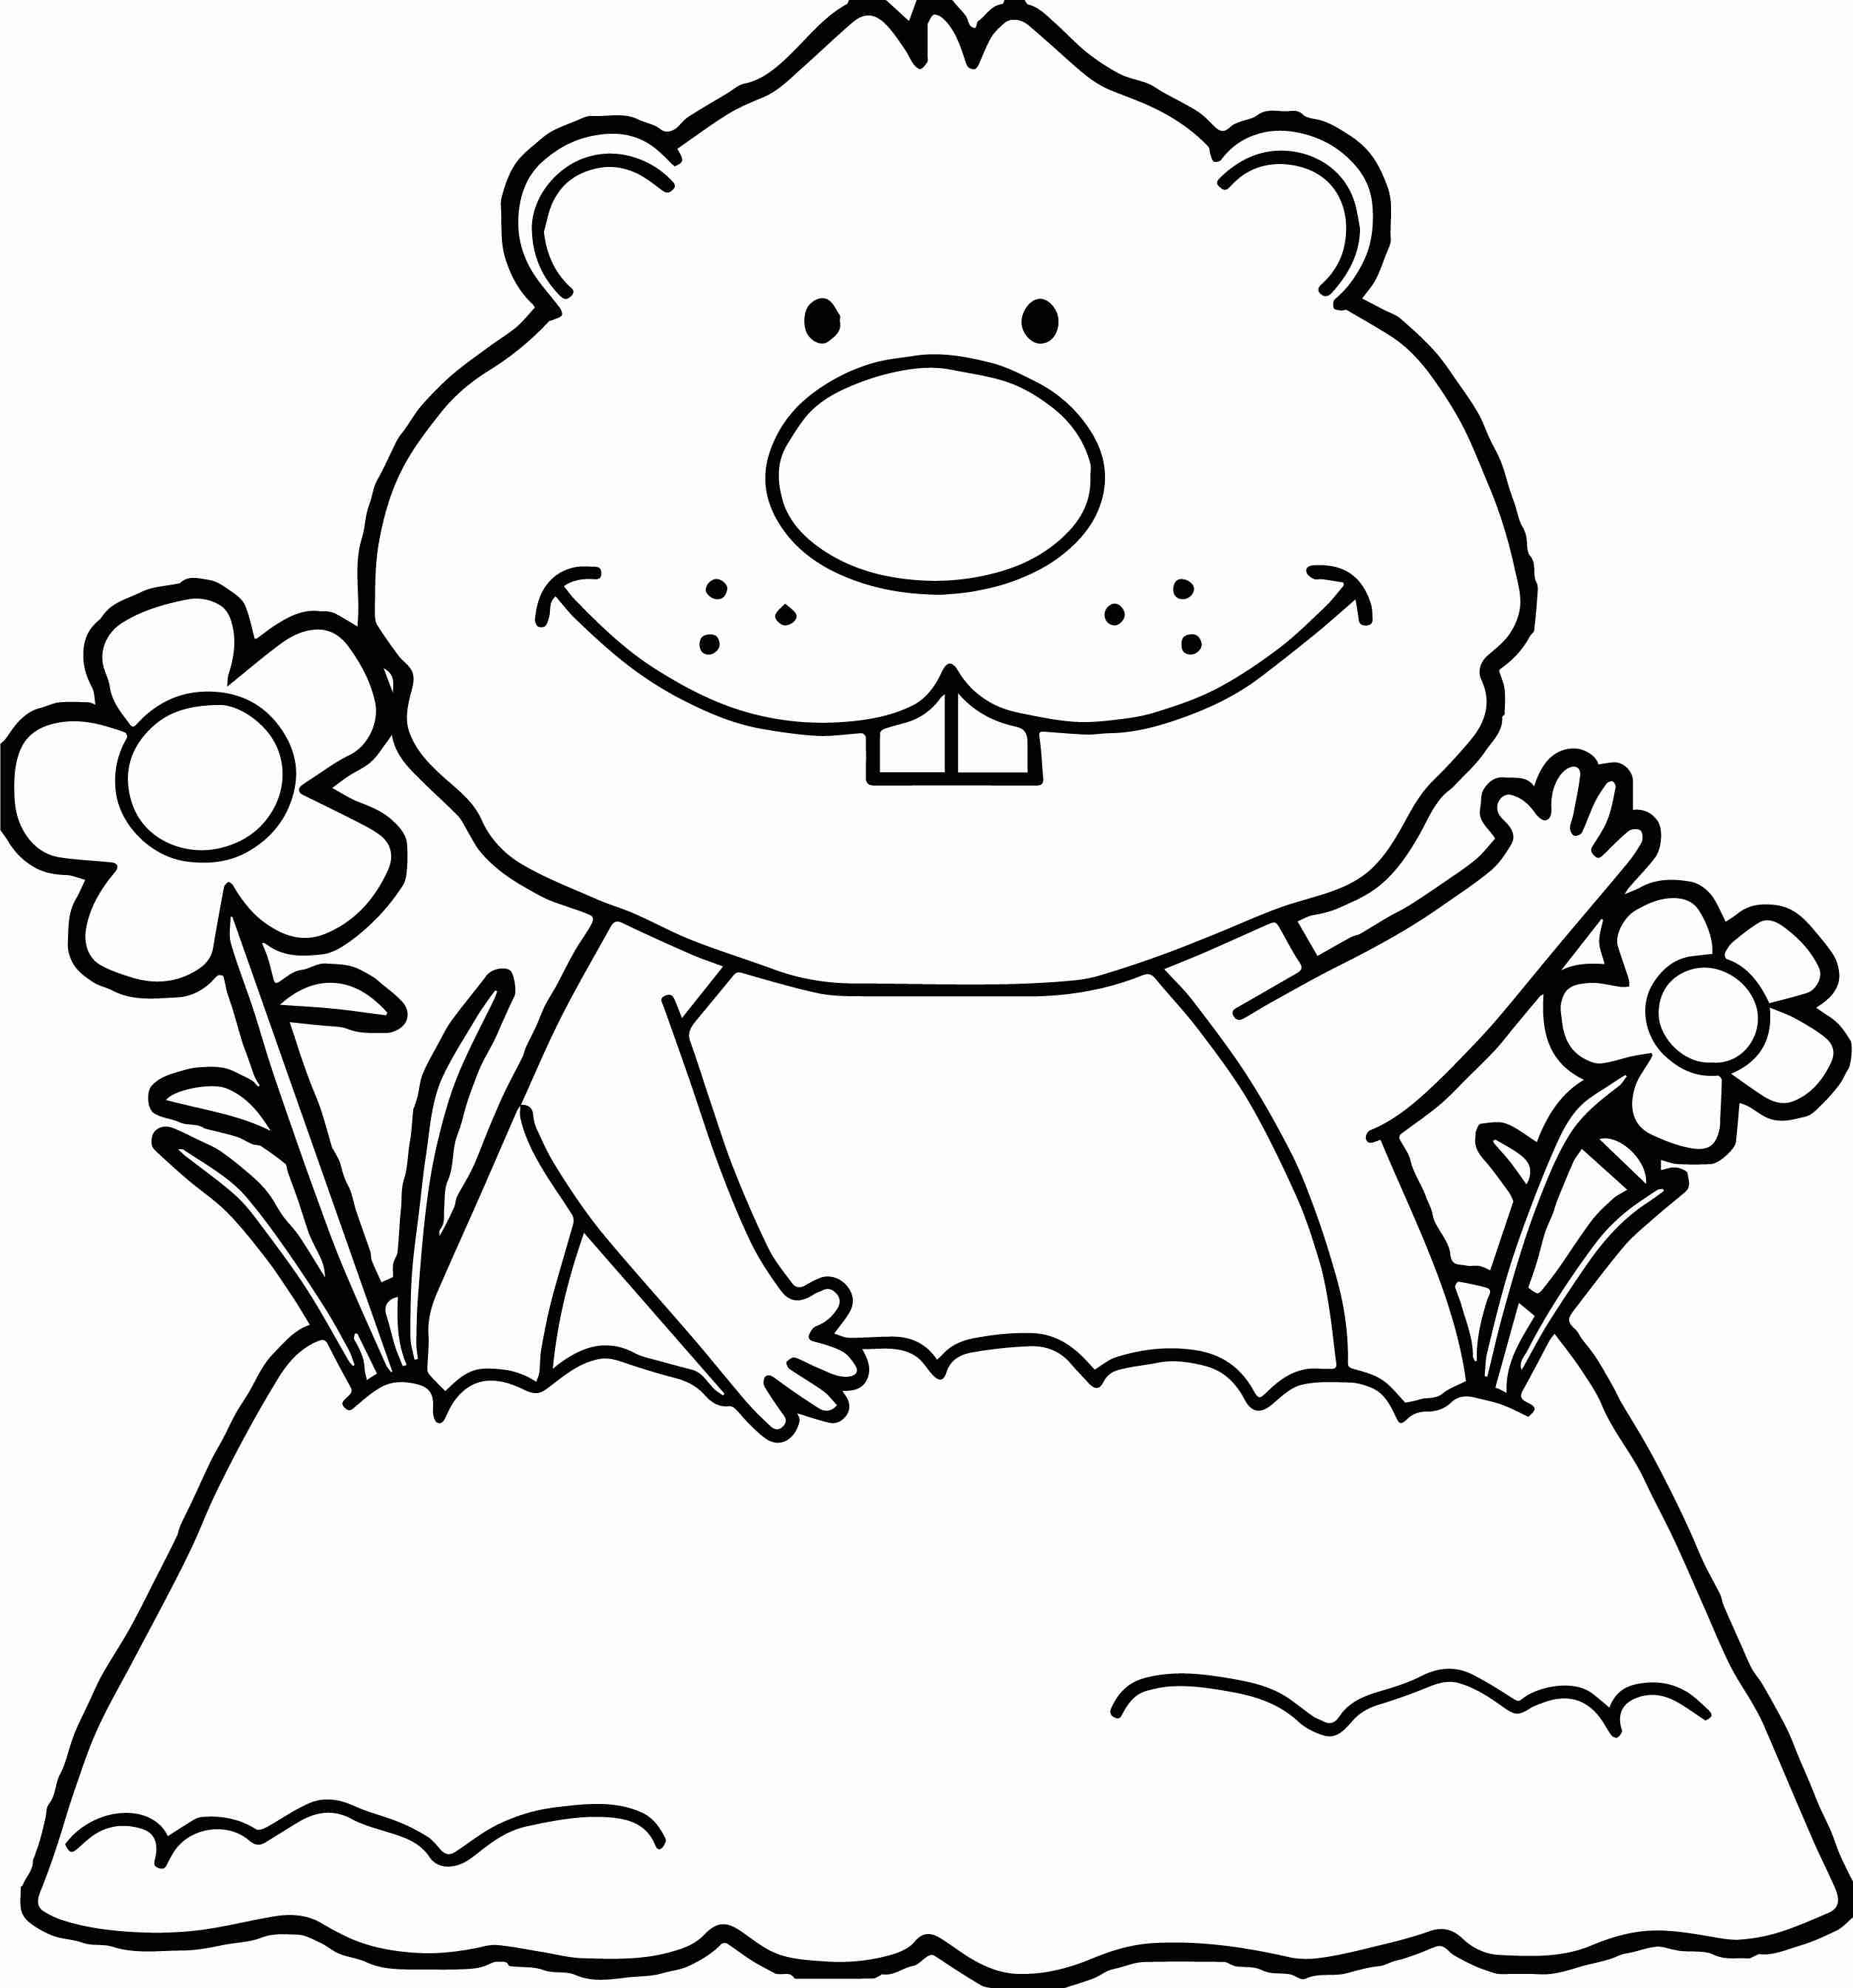 Free Groundhog Coloring Pages At Getdrawings Com Free For Personal